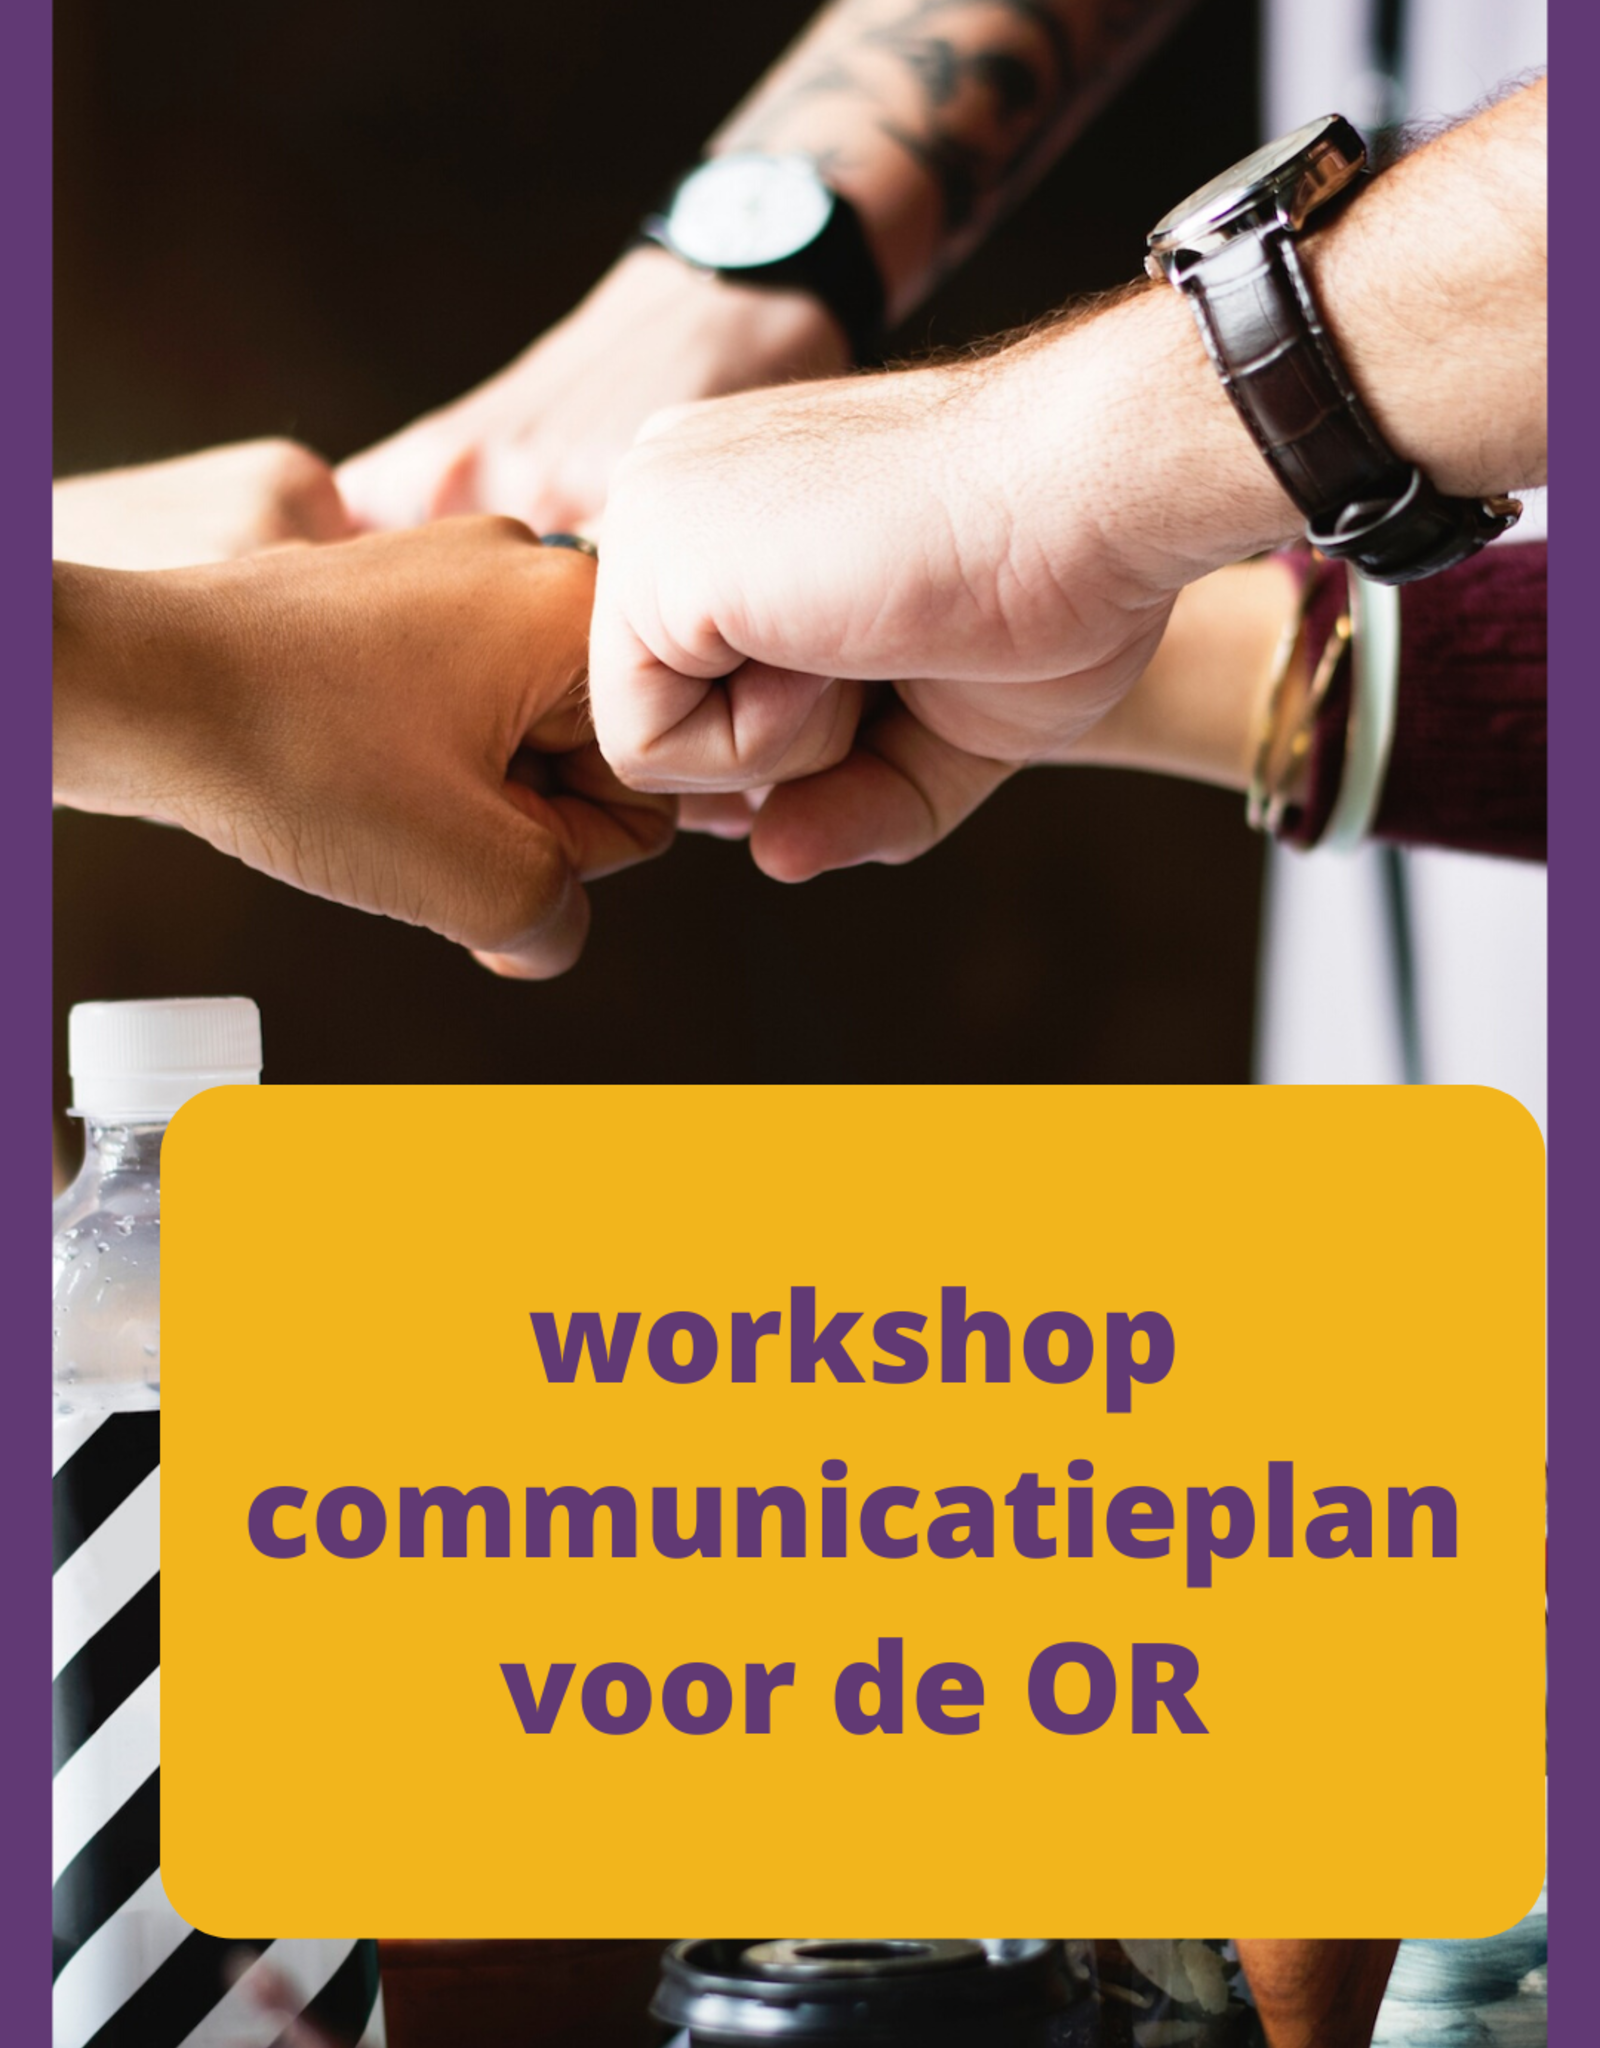 Workshop communicatieplan voor de Ondernemingsraad